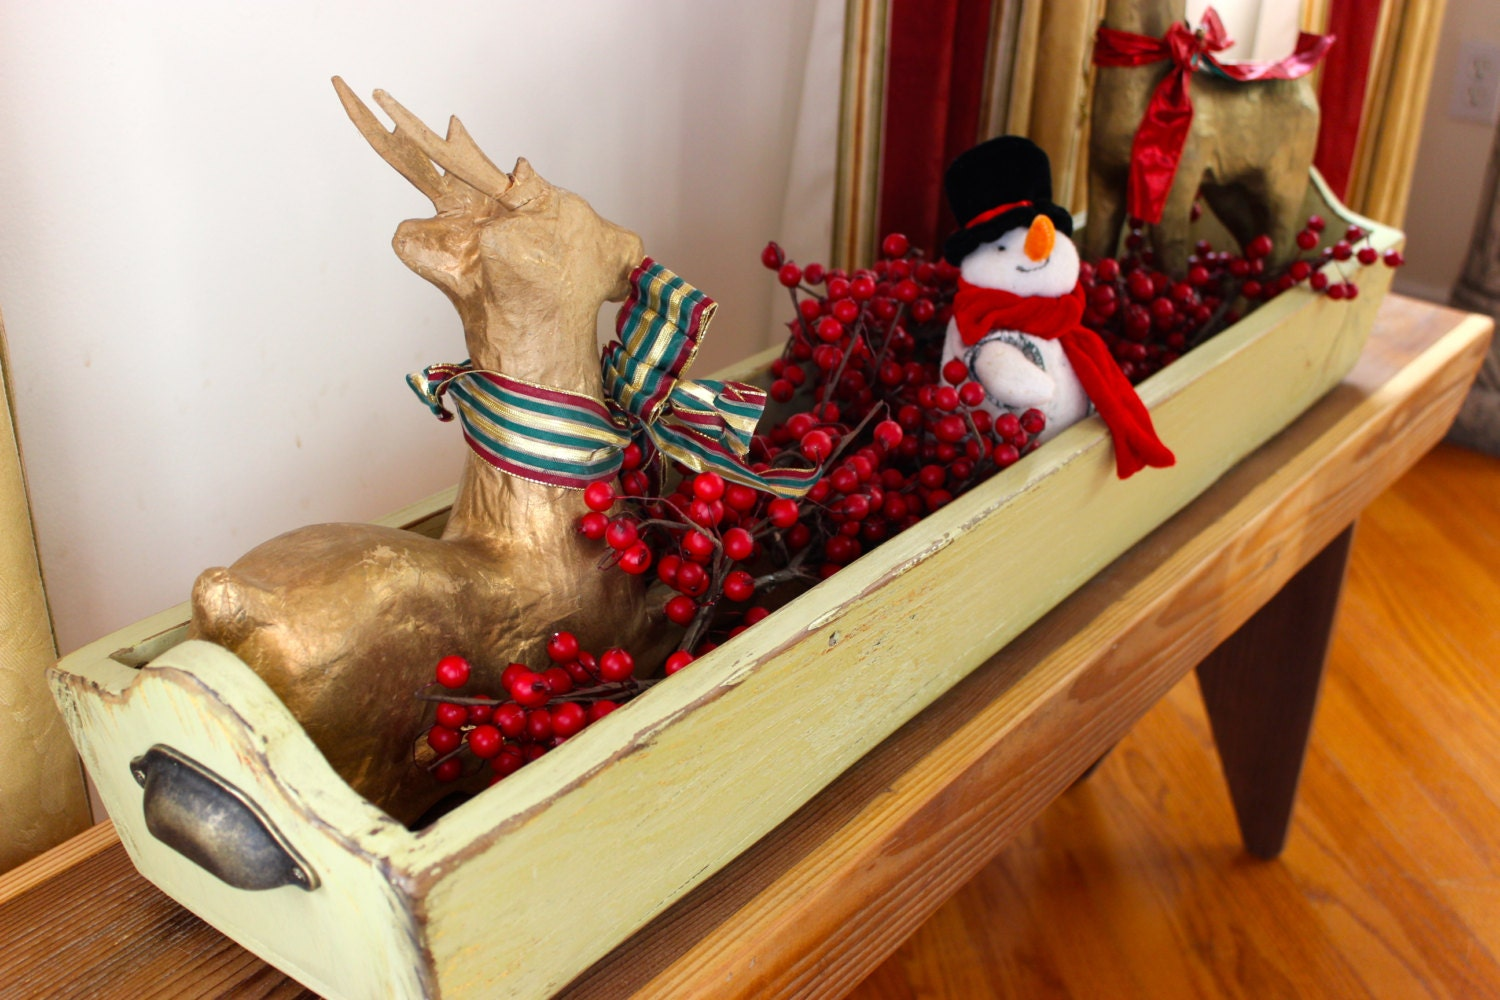 Holiday centerpiece table trough from weathered barn wood with